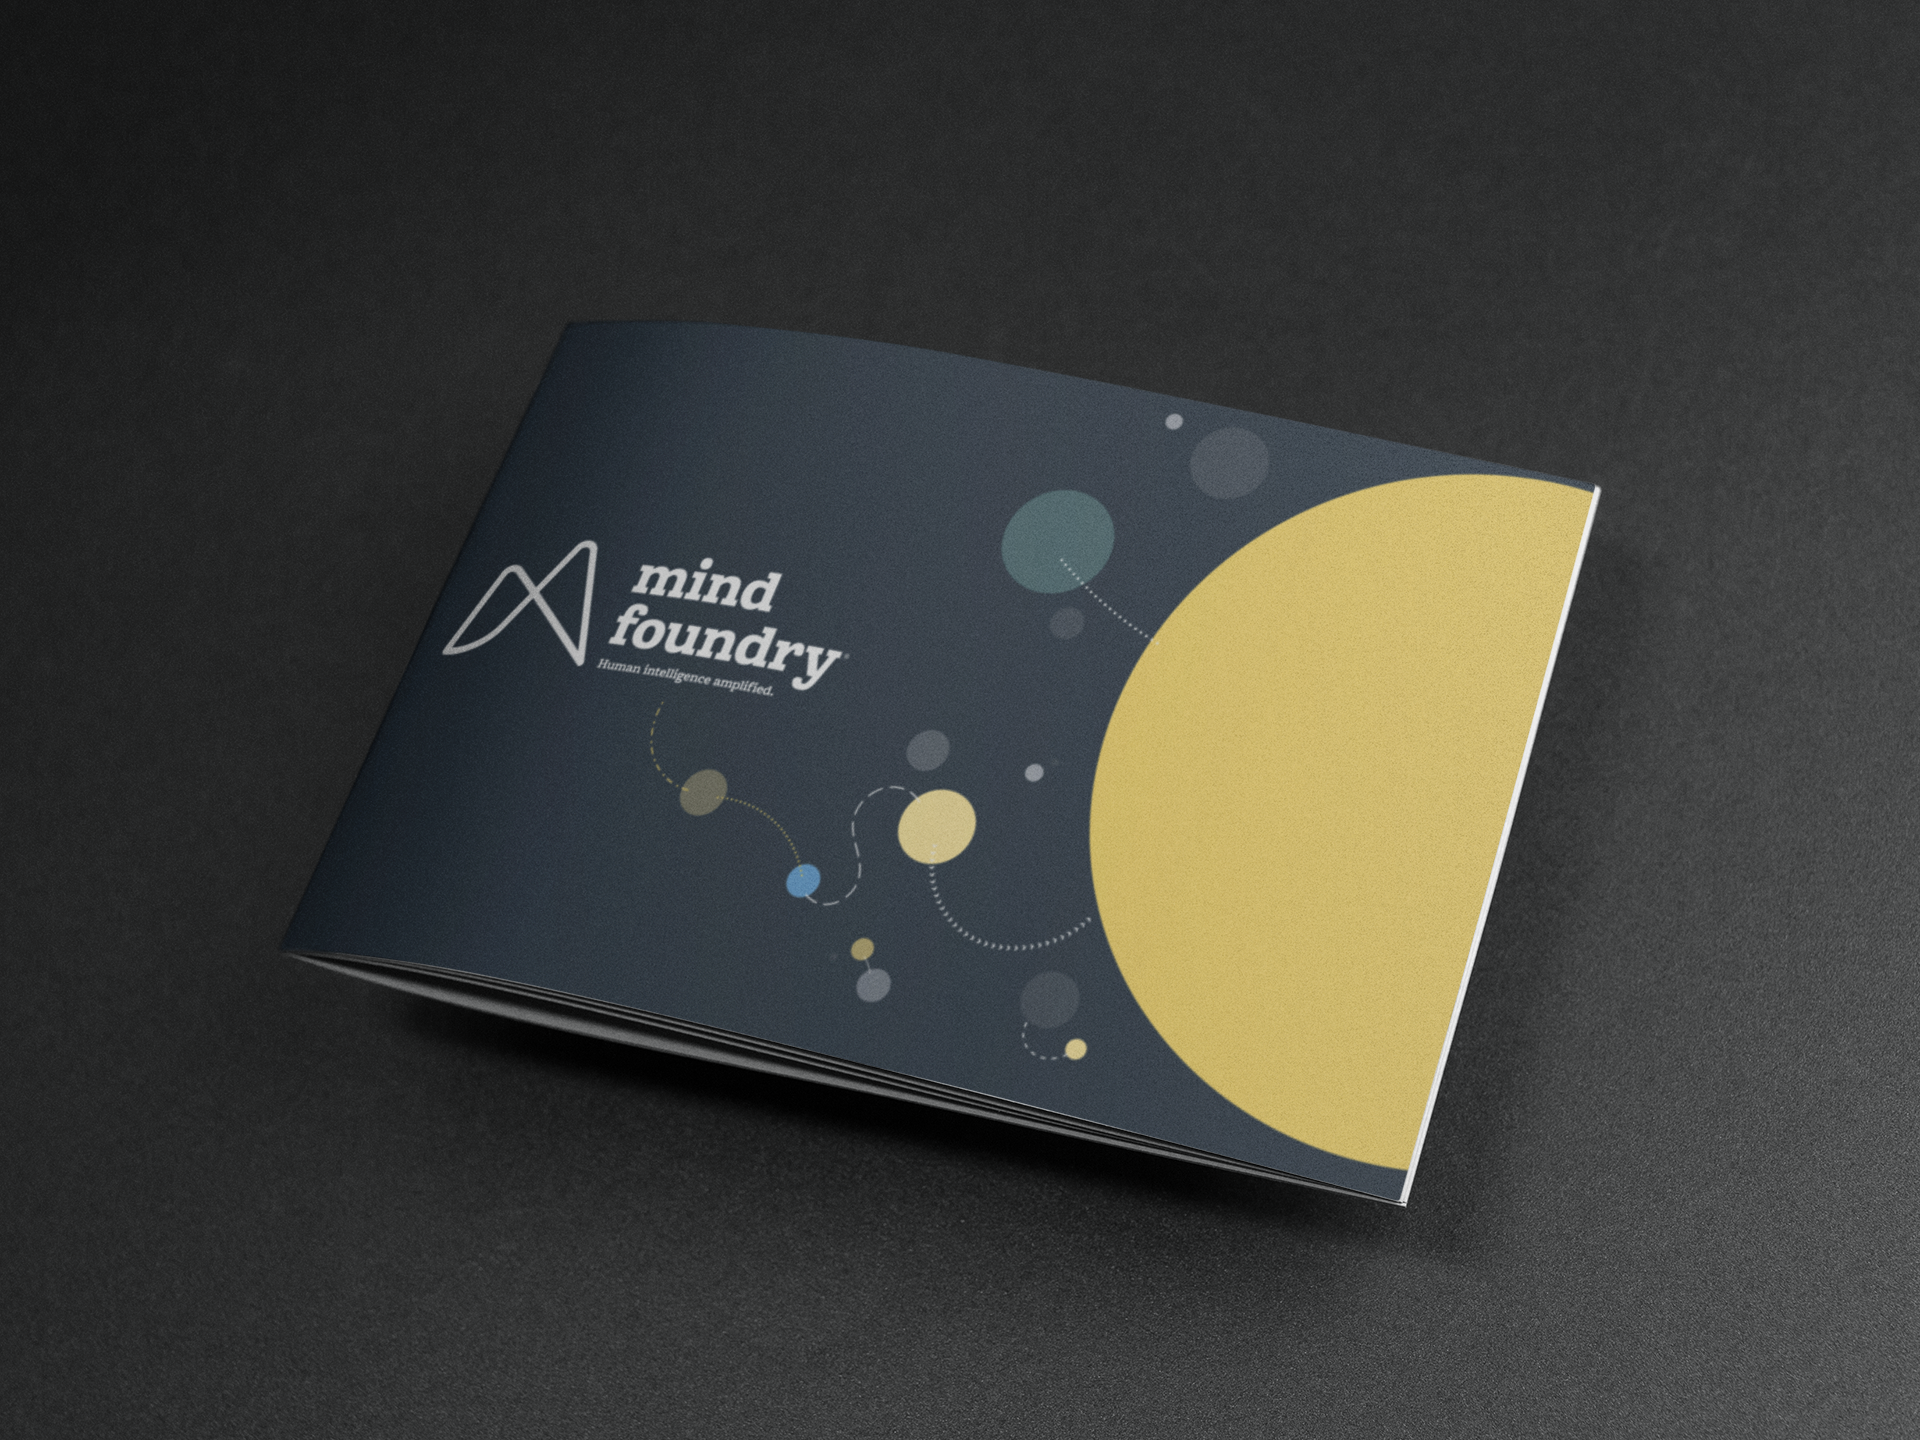 closed-booklet-on-a-black-surface-mockup-a14585